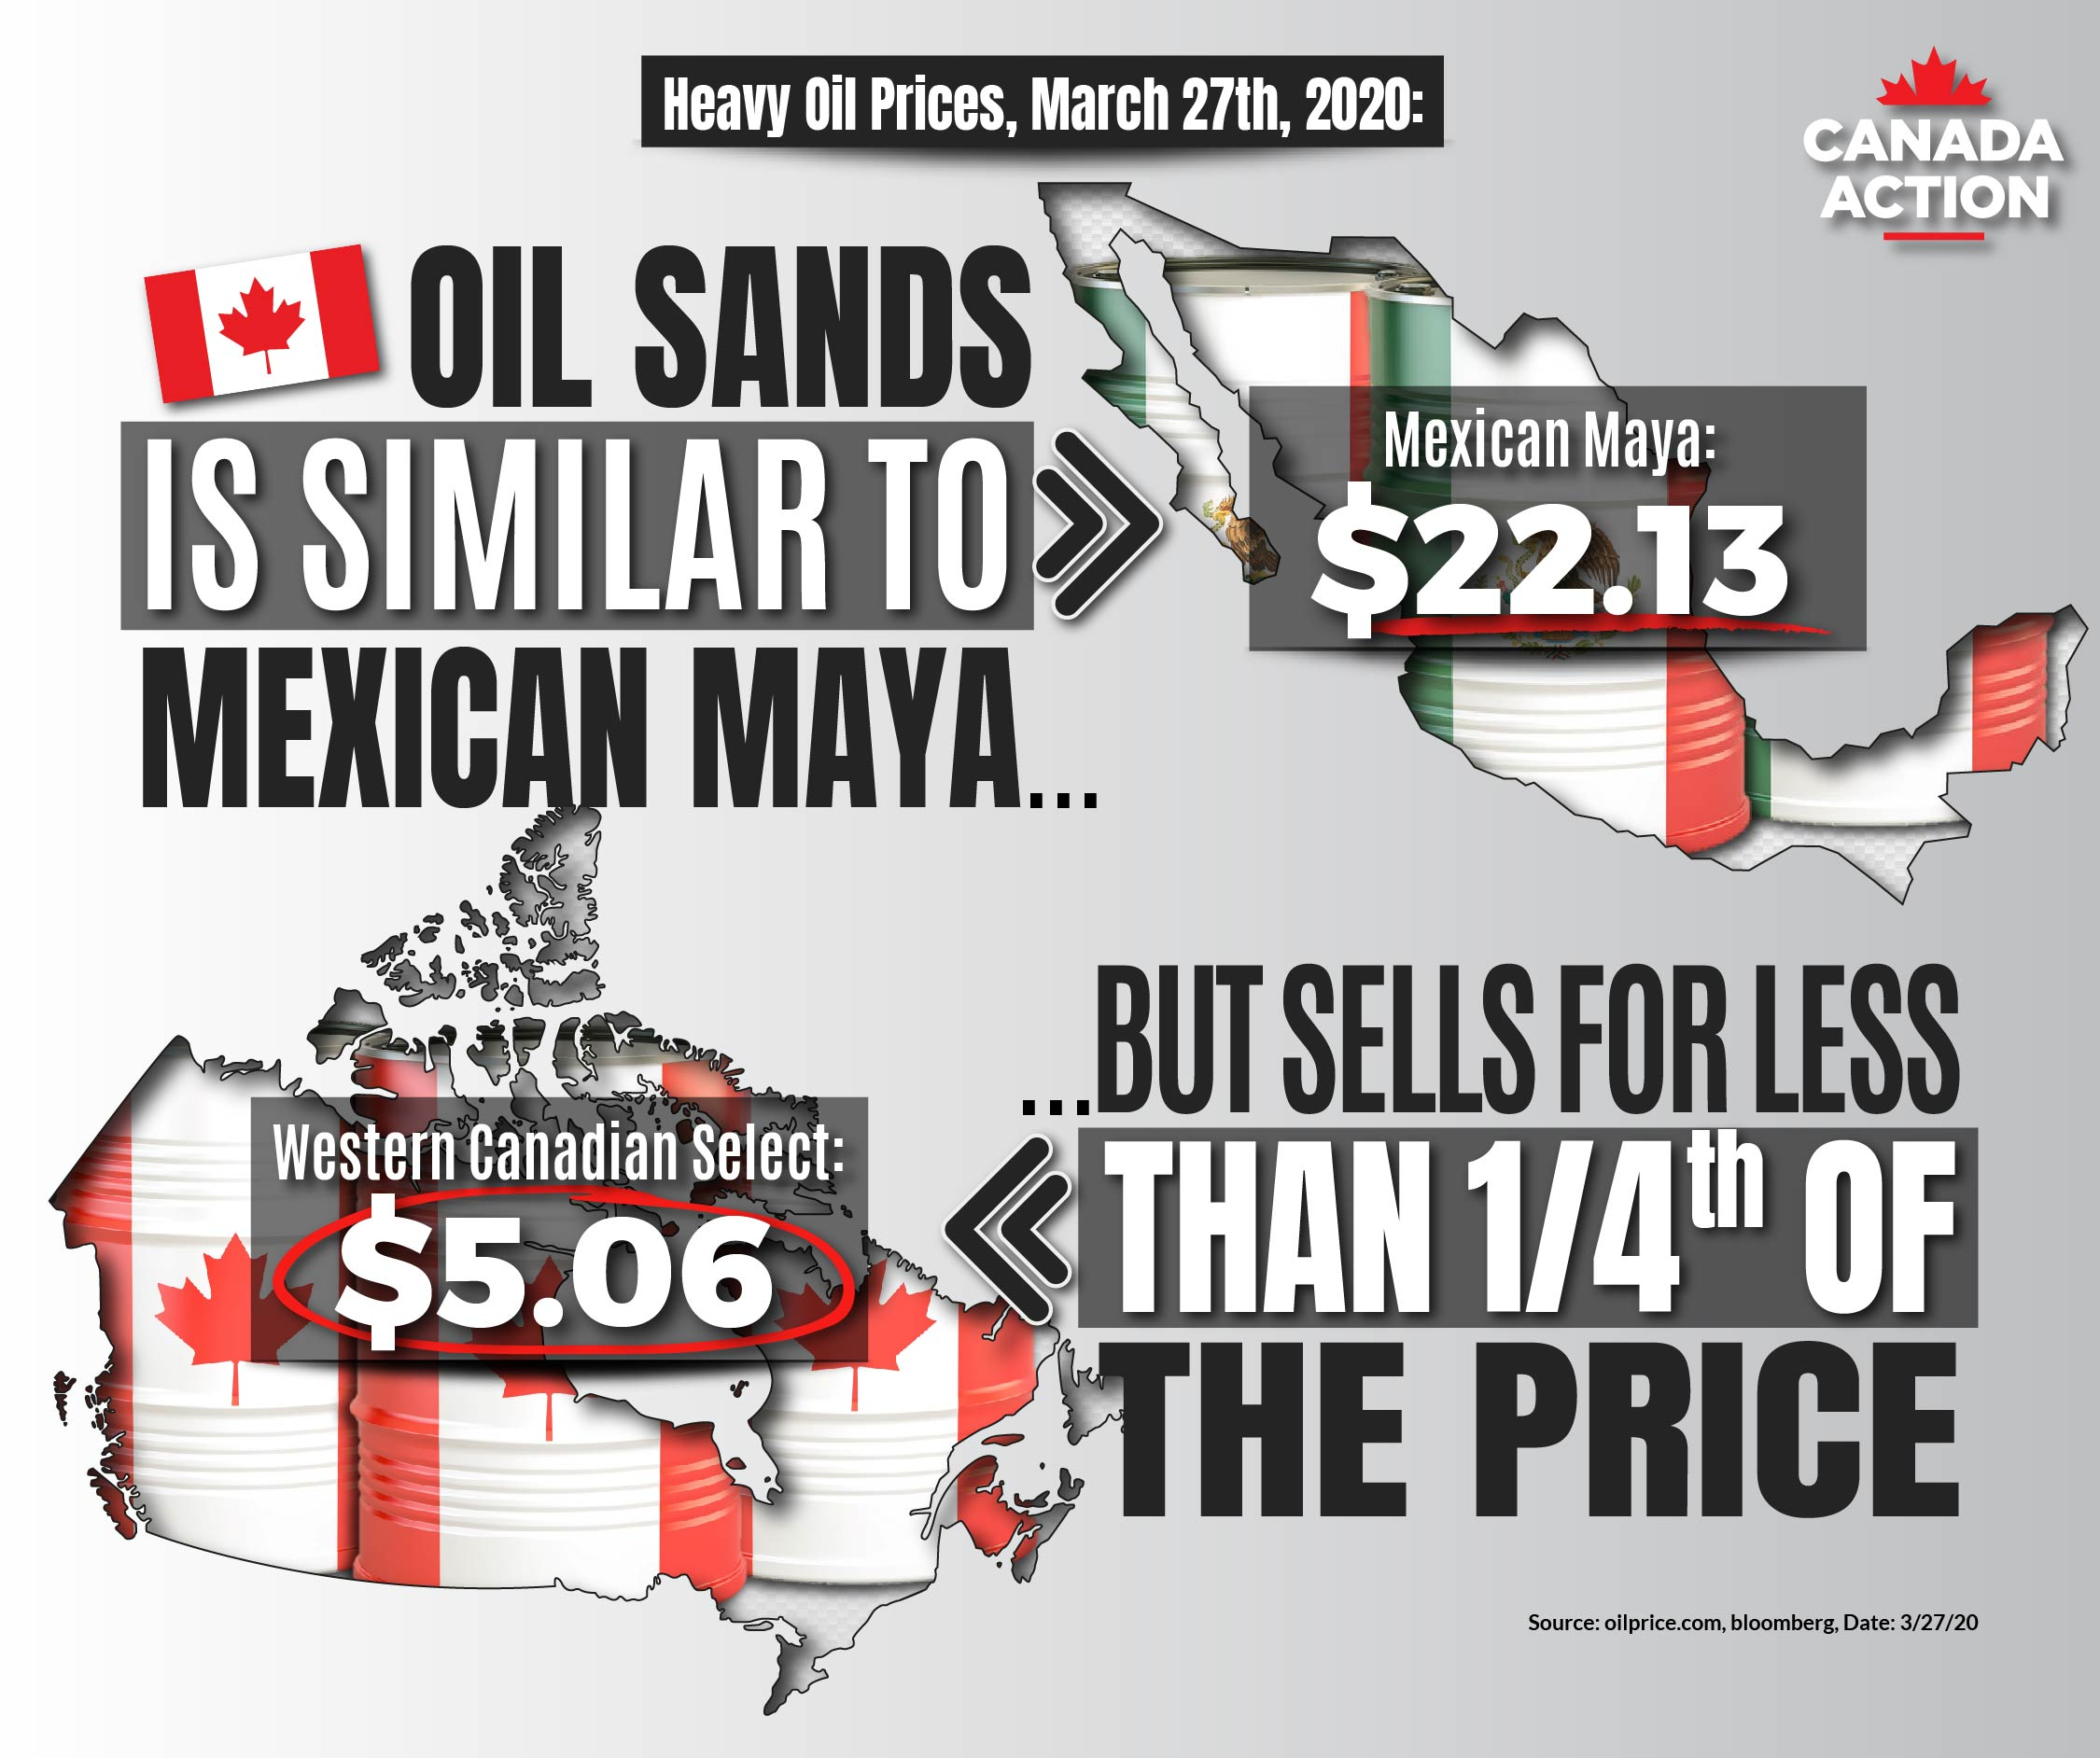 Canada heavy oil price discount vs Mexican Maya - March 2020